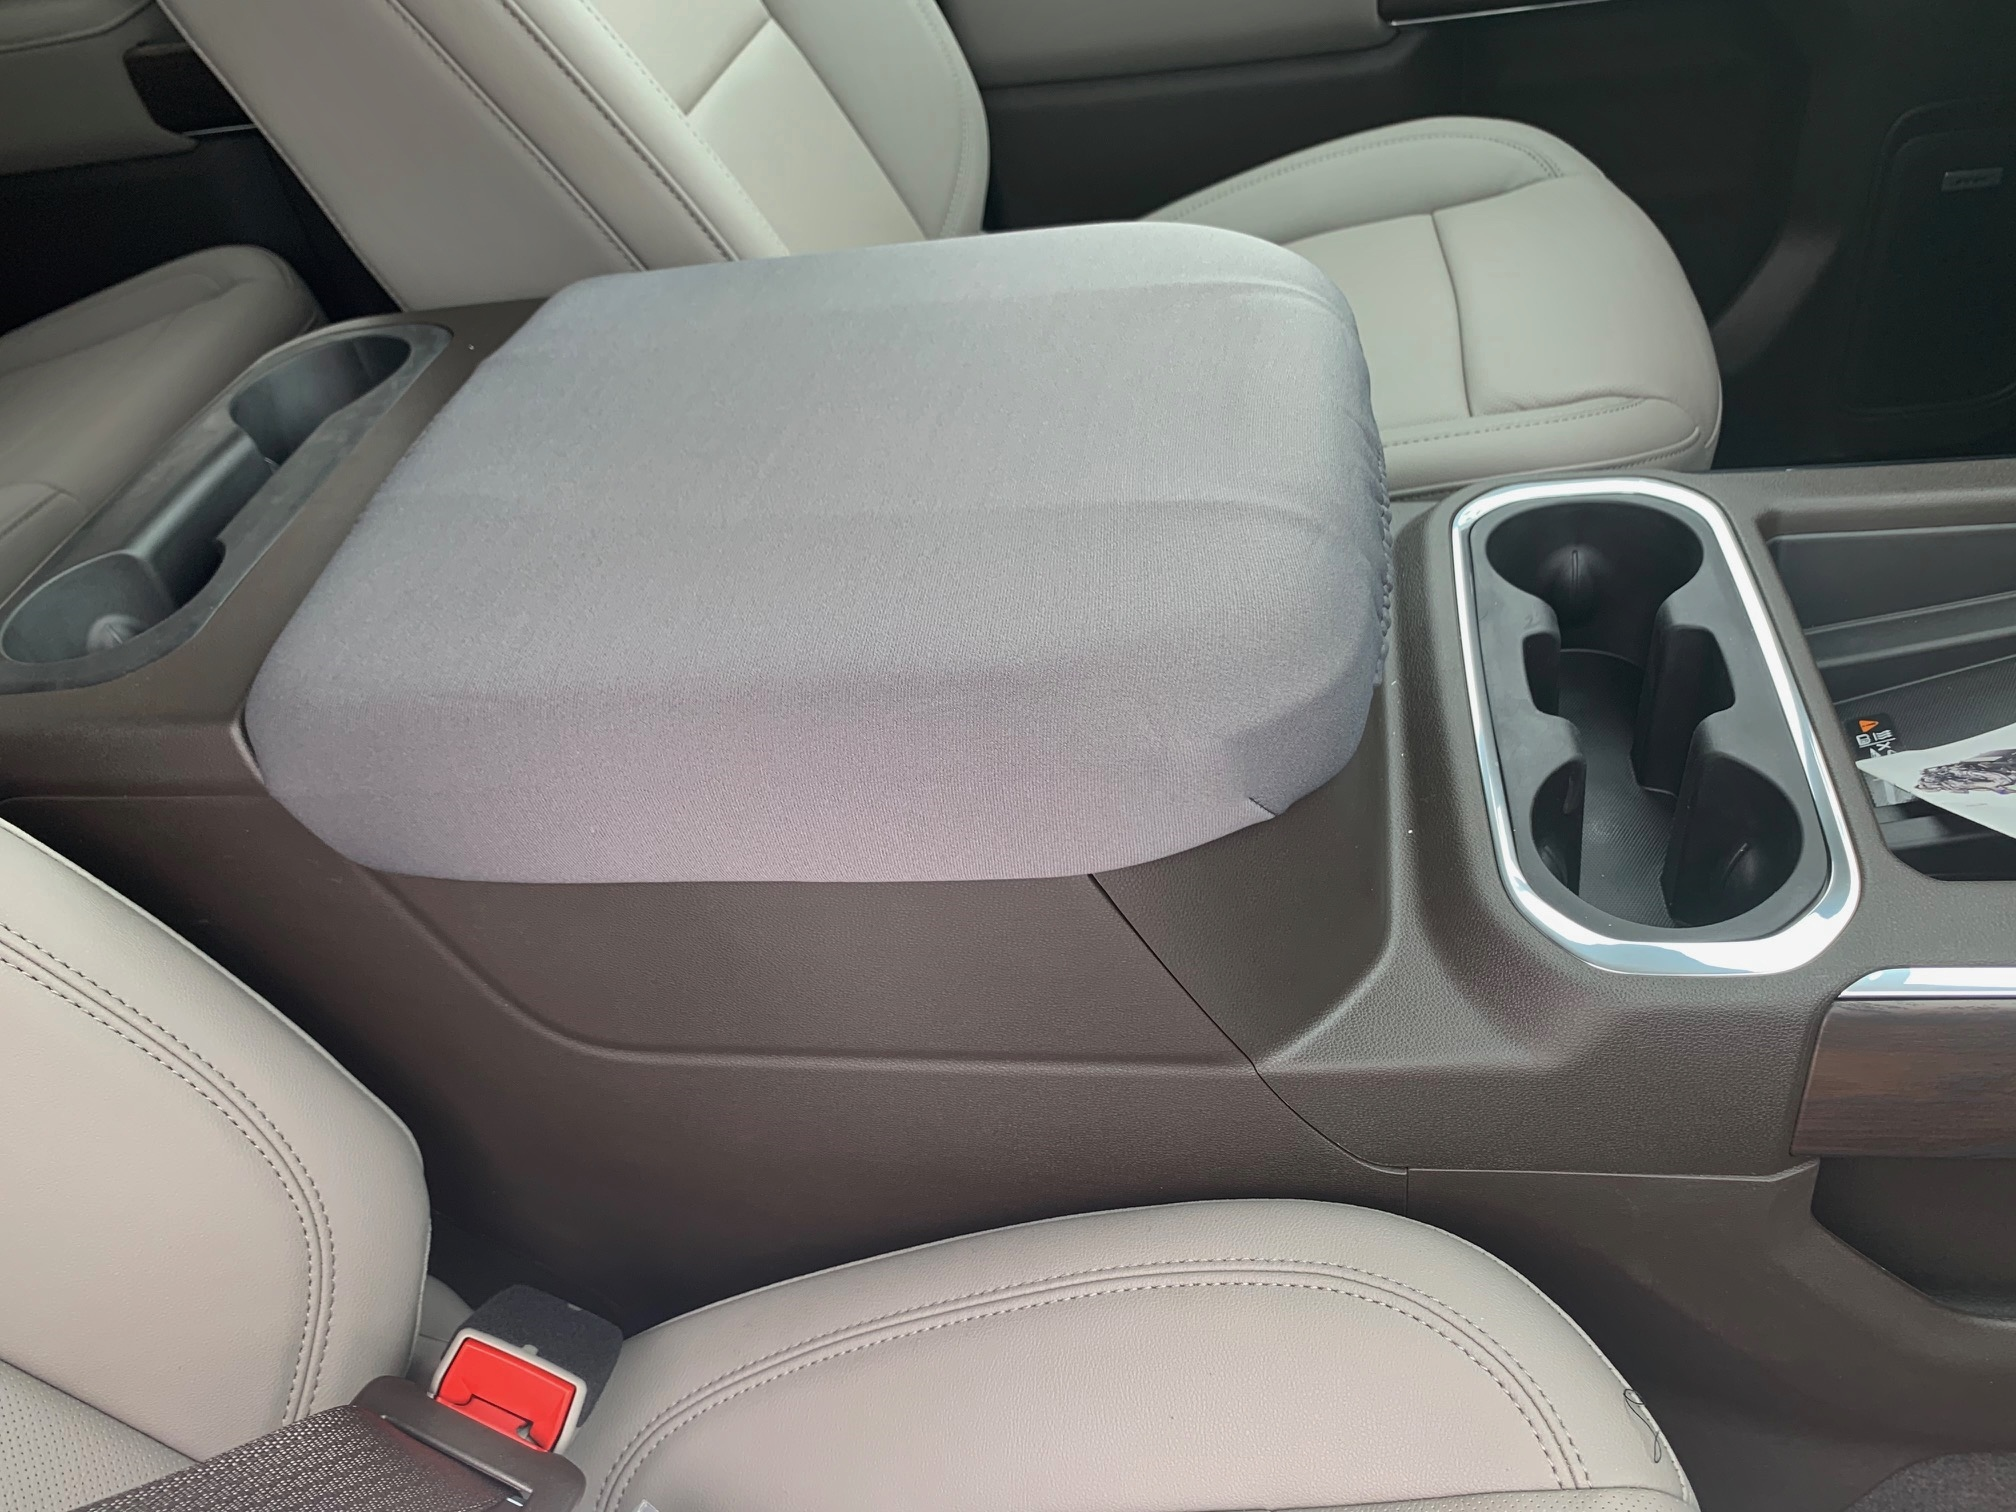 Buy Neoprene Center Console Armrest Cover Fits the GMC Sierra SLT 2019-2021